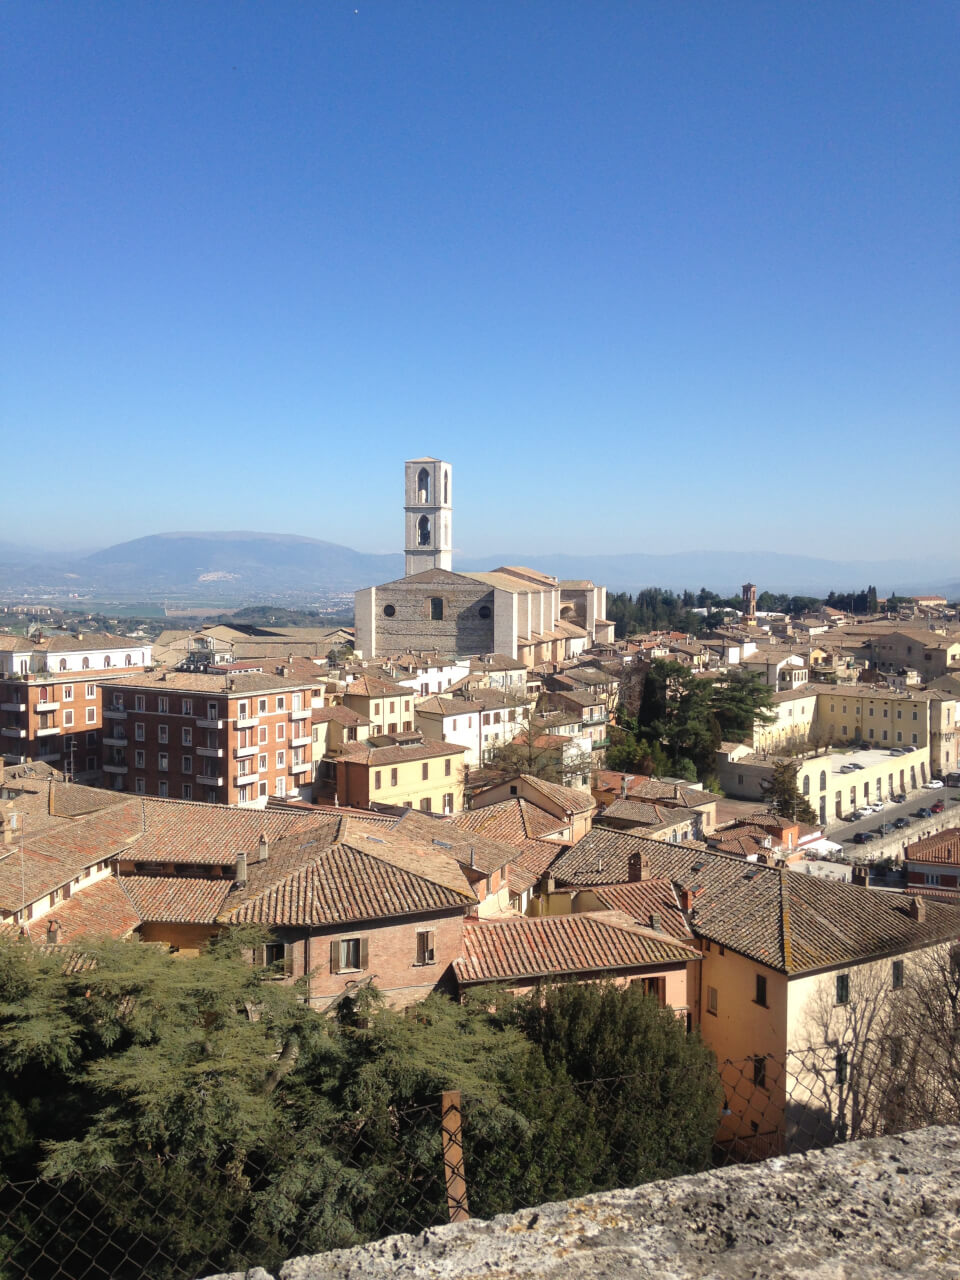 La Primavera Italiana: Sunshine, Palio Preparations, and a trip to Perugia!